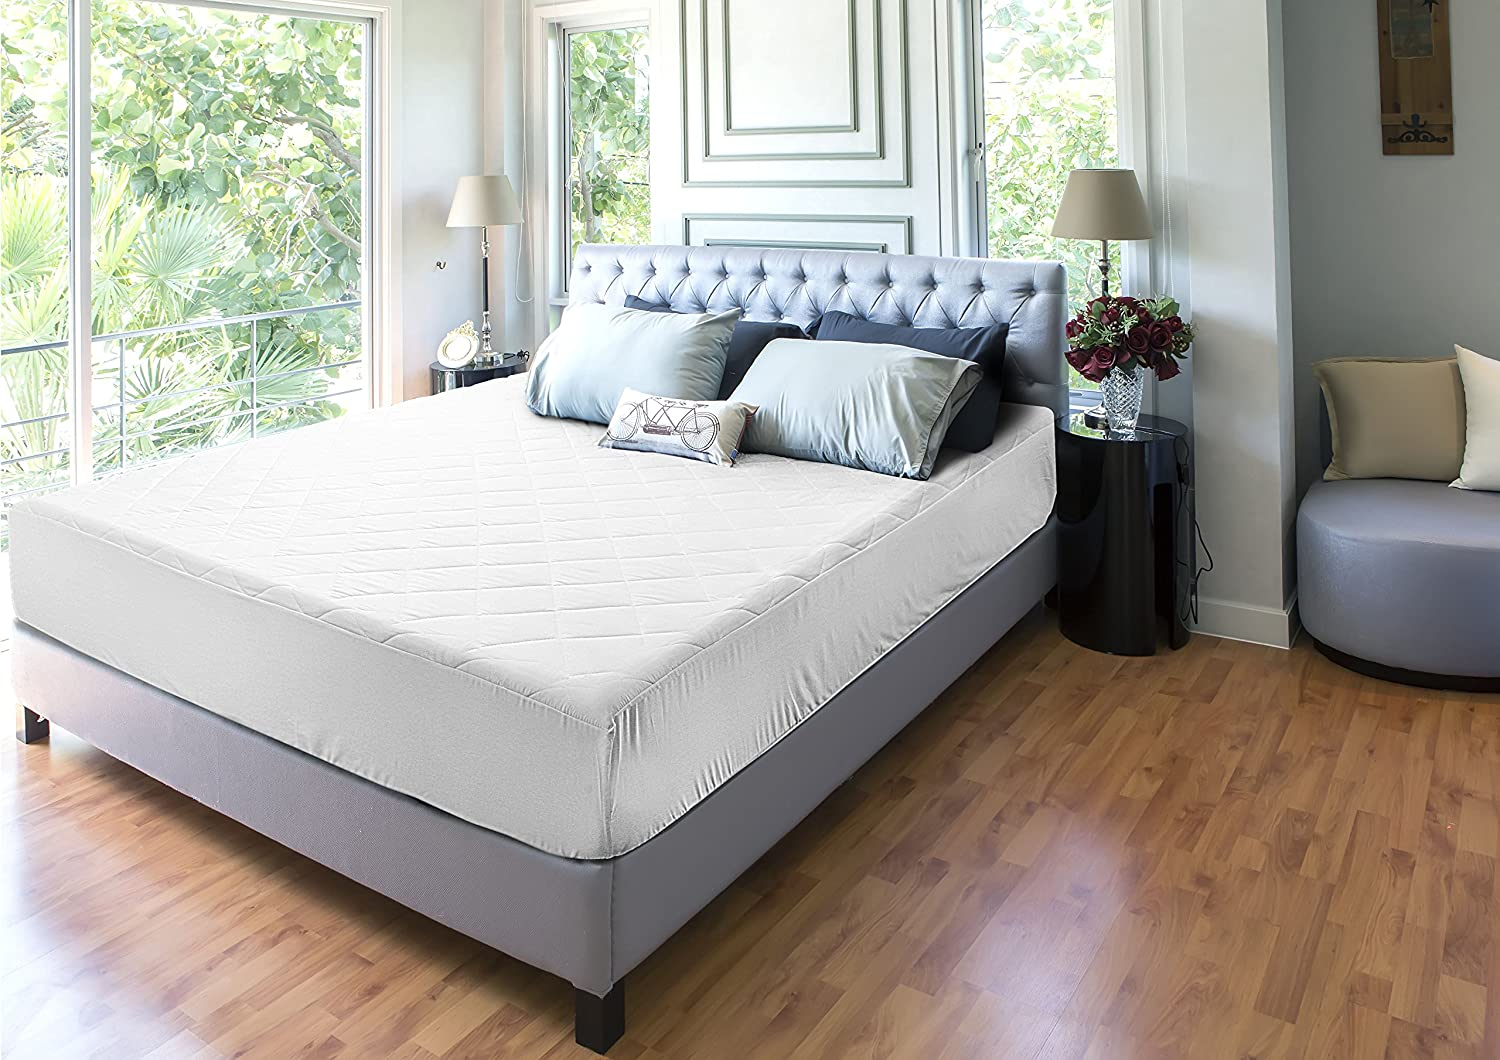 Quilted Fitted Mattress Pad (King) - Mattress Cover Stretches up to 16 Inches Deep - Mattress Topper by Utopia Bedding